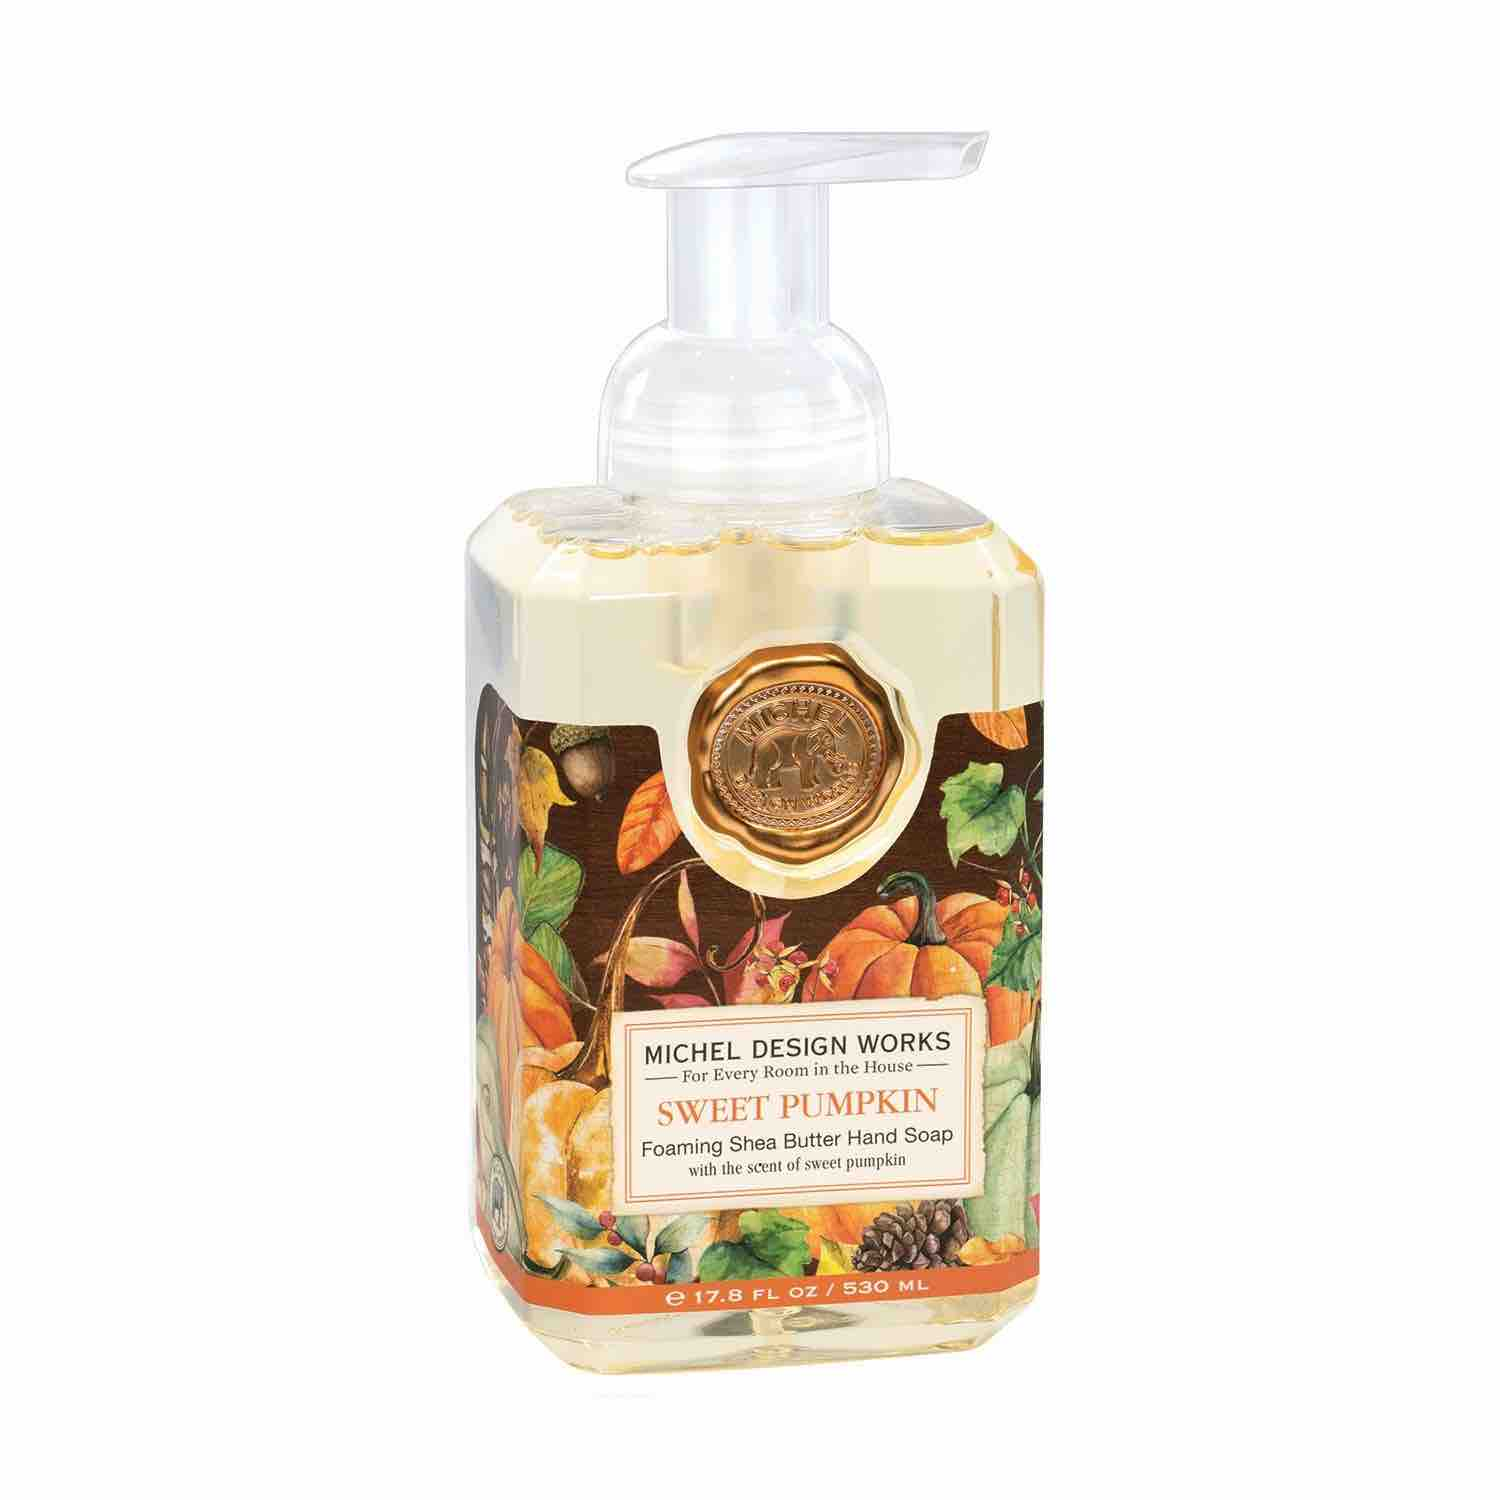 Michel Design Works Foaming Soap | Sweet Pumpkin